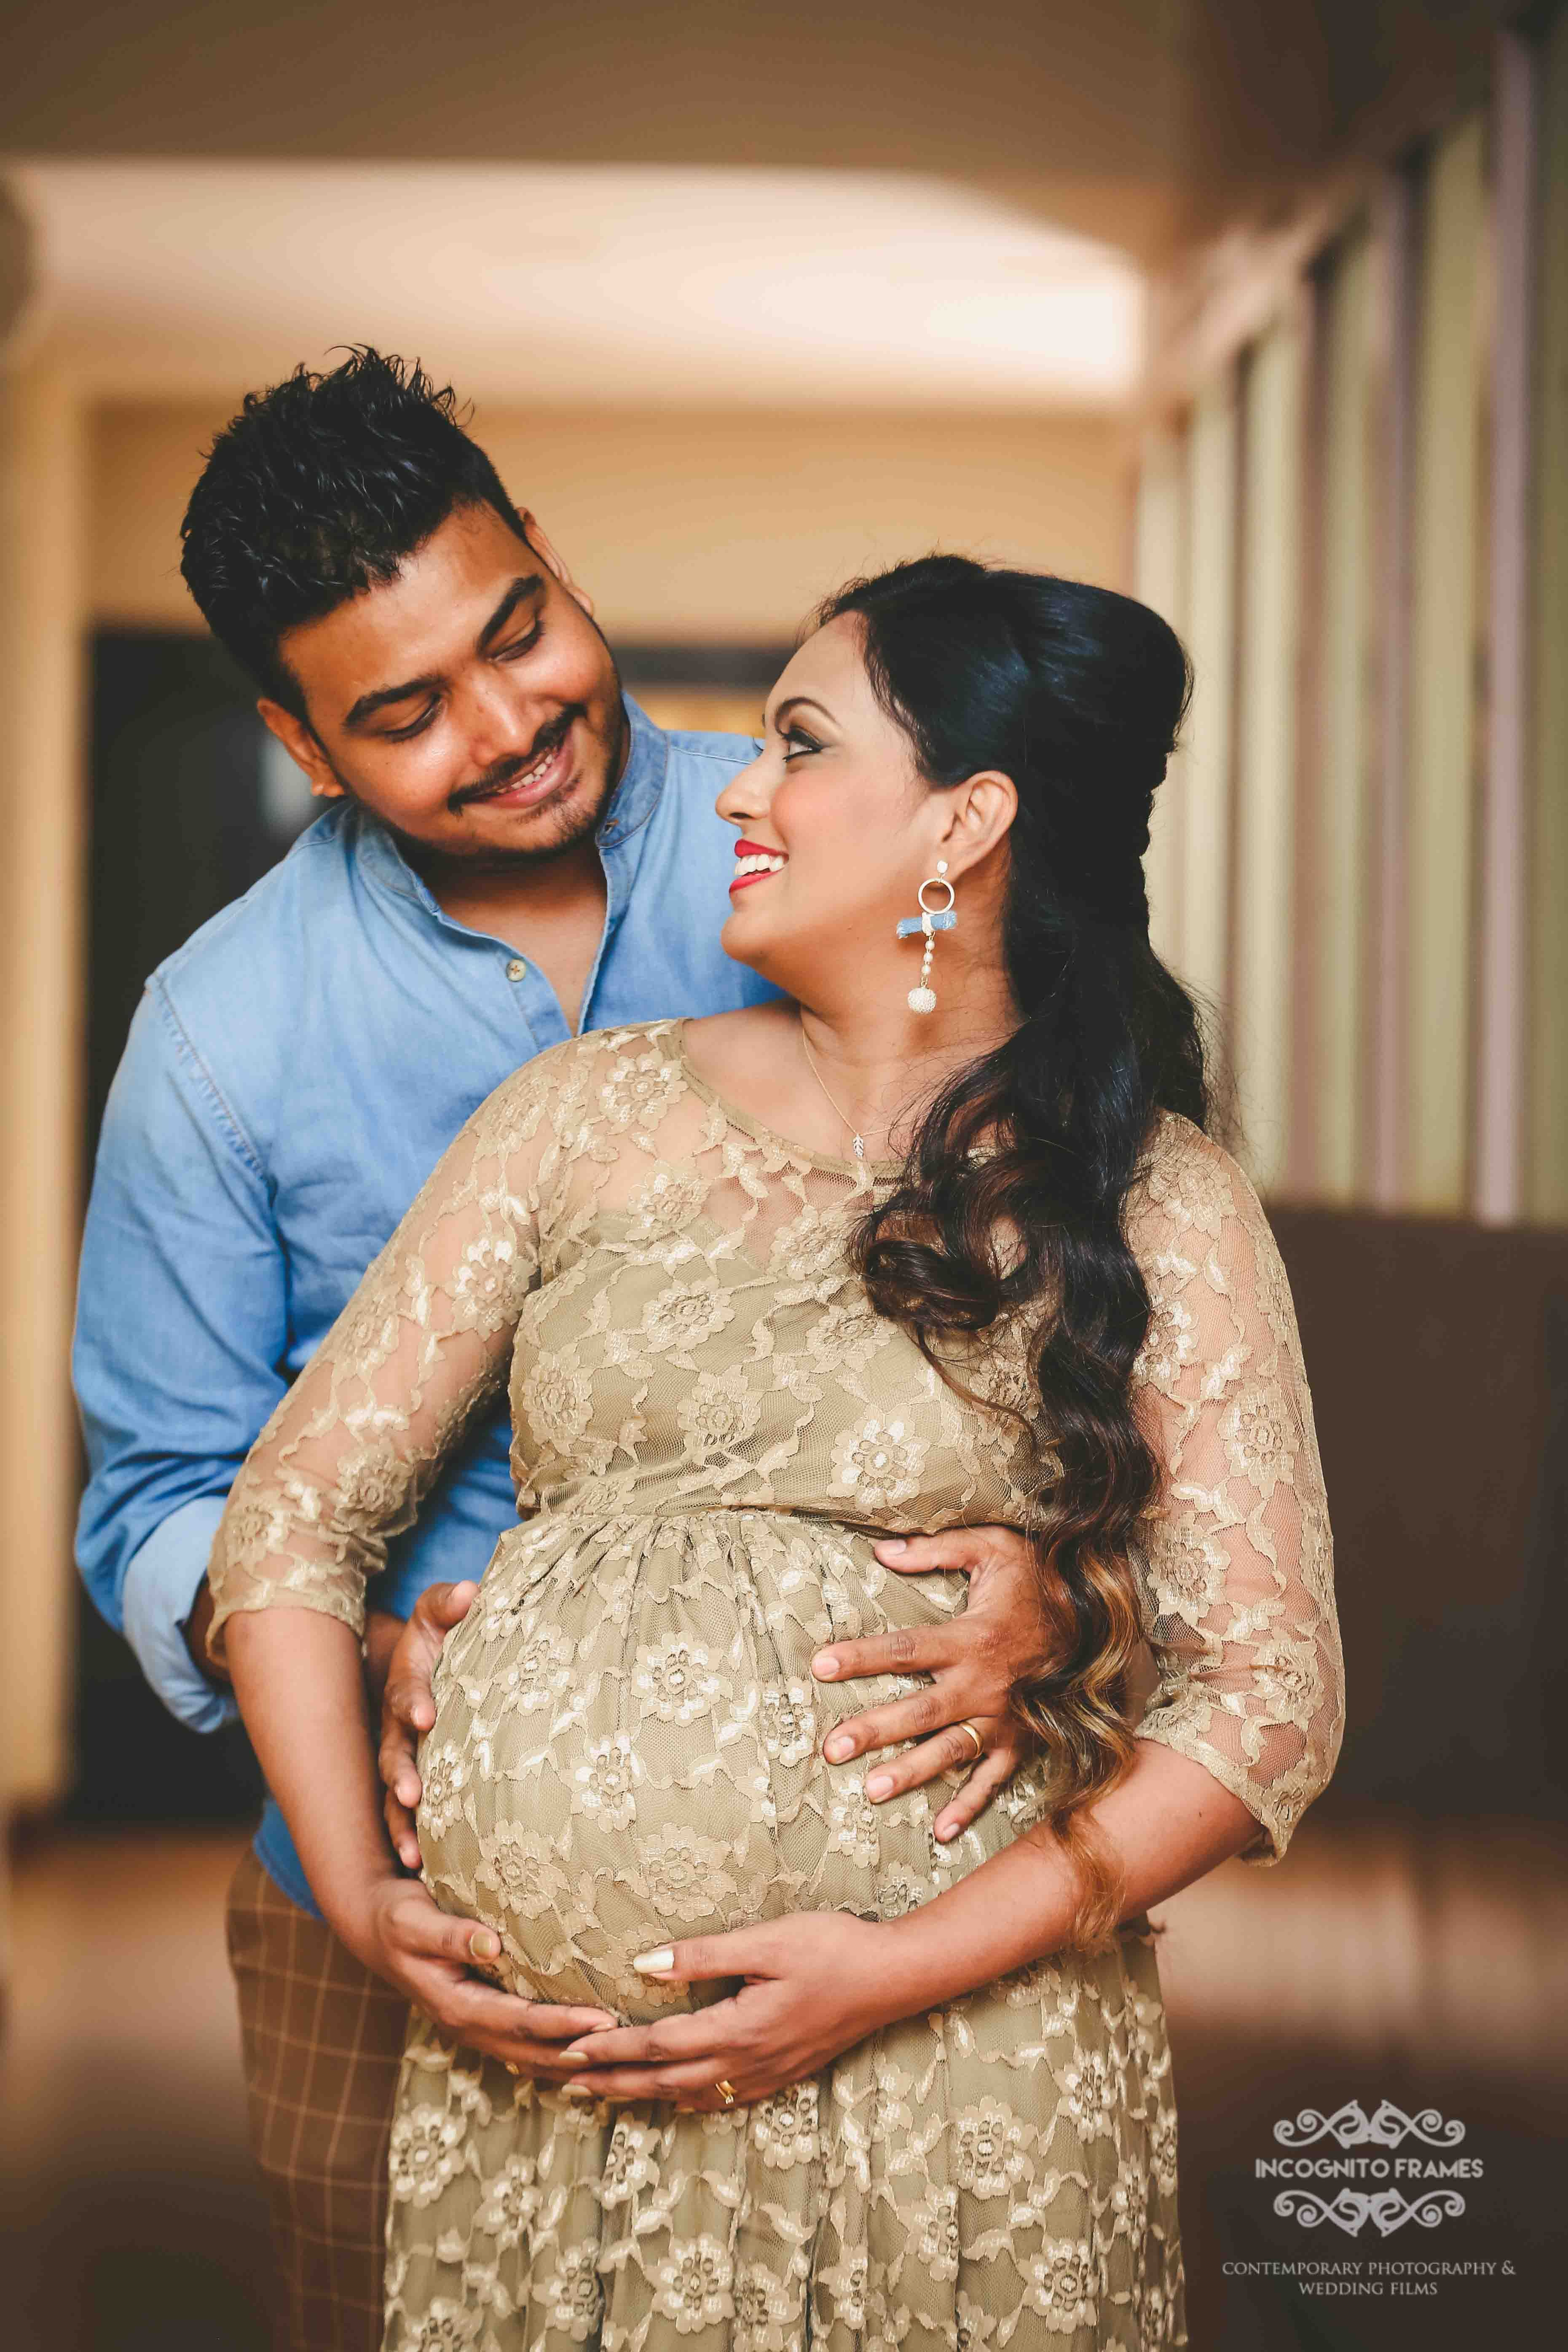 A Peek Into The Maternity Photography Incognito Frames Maternity Photoshoot Poses Maternity Photography Poses Maternity Photography Poses Couple